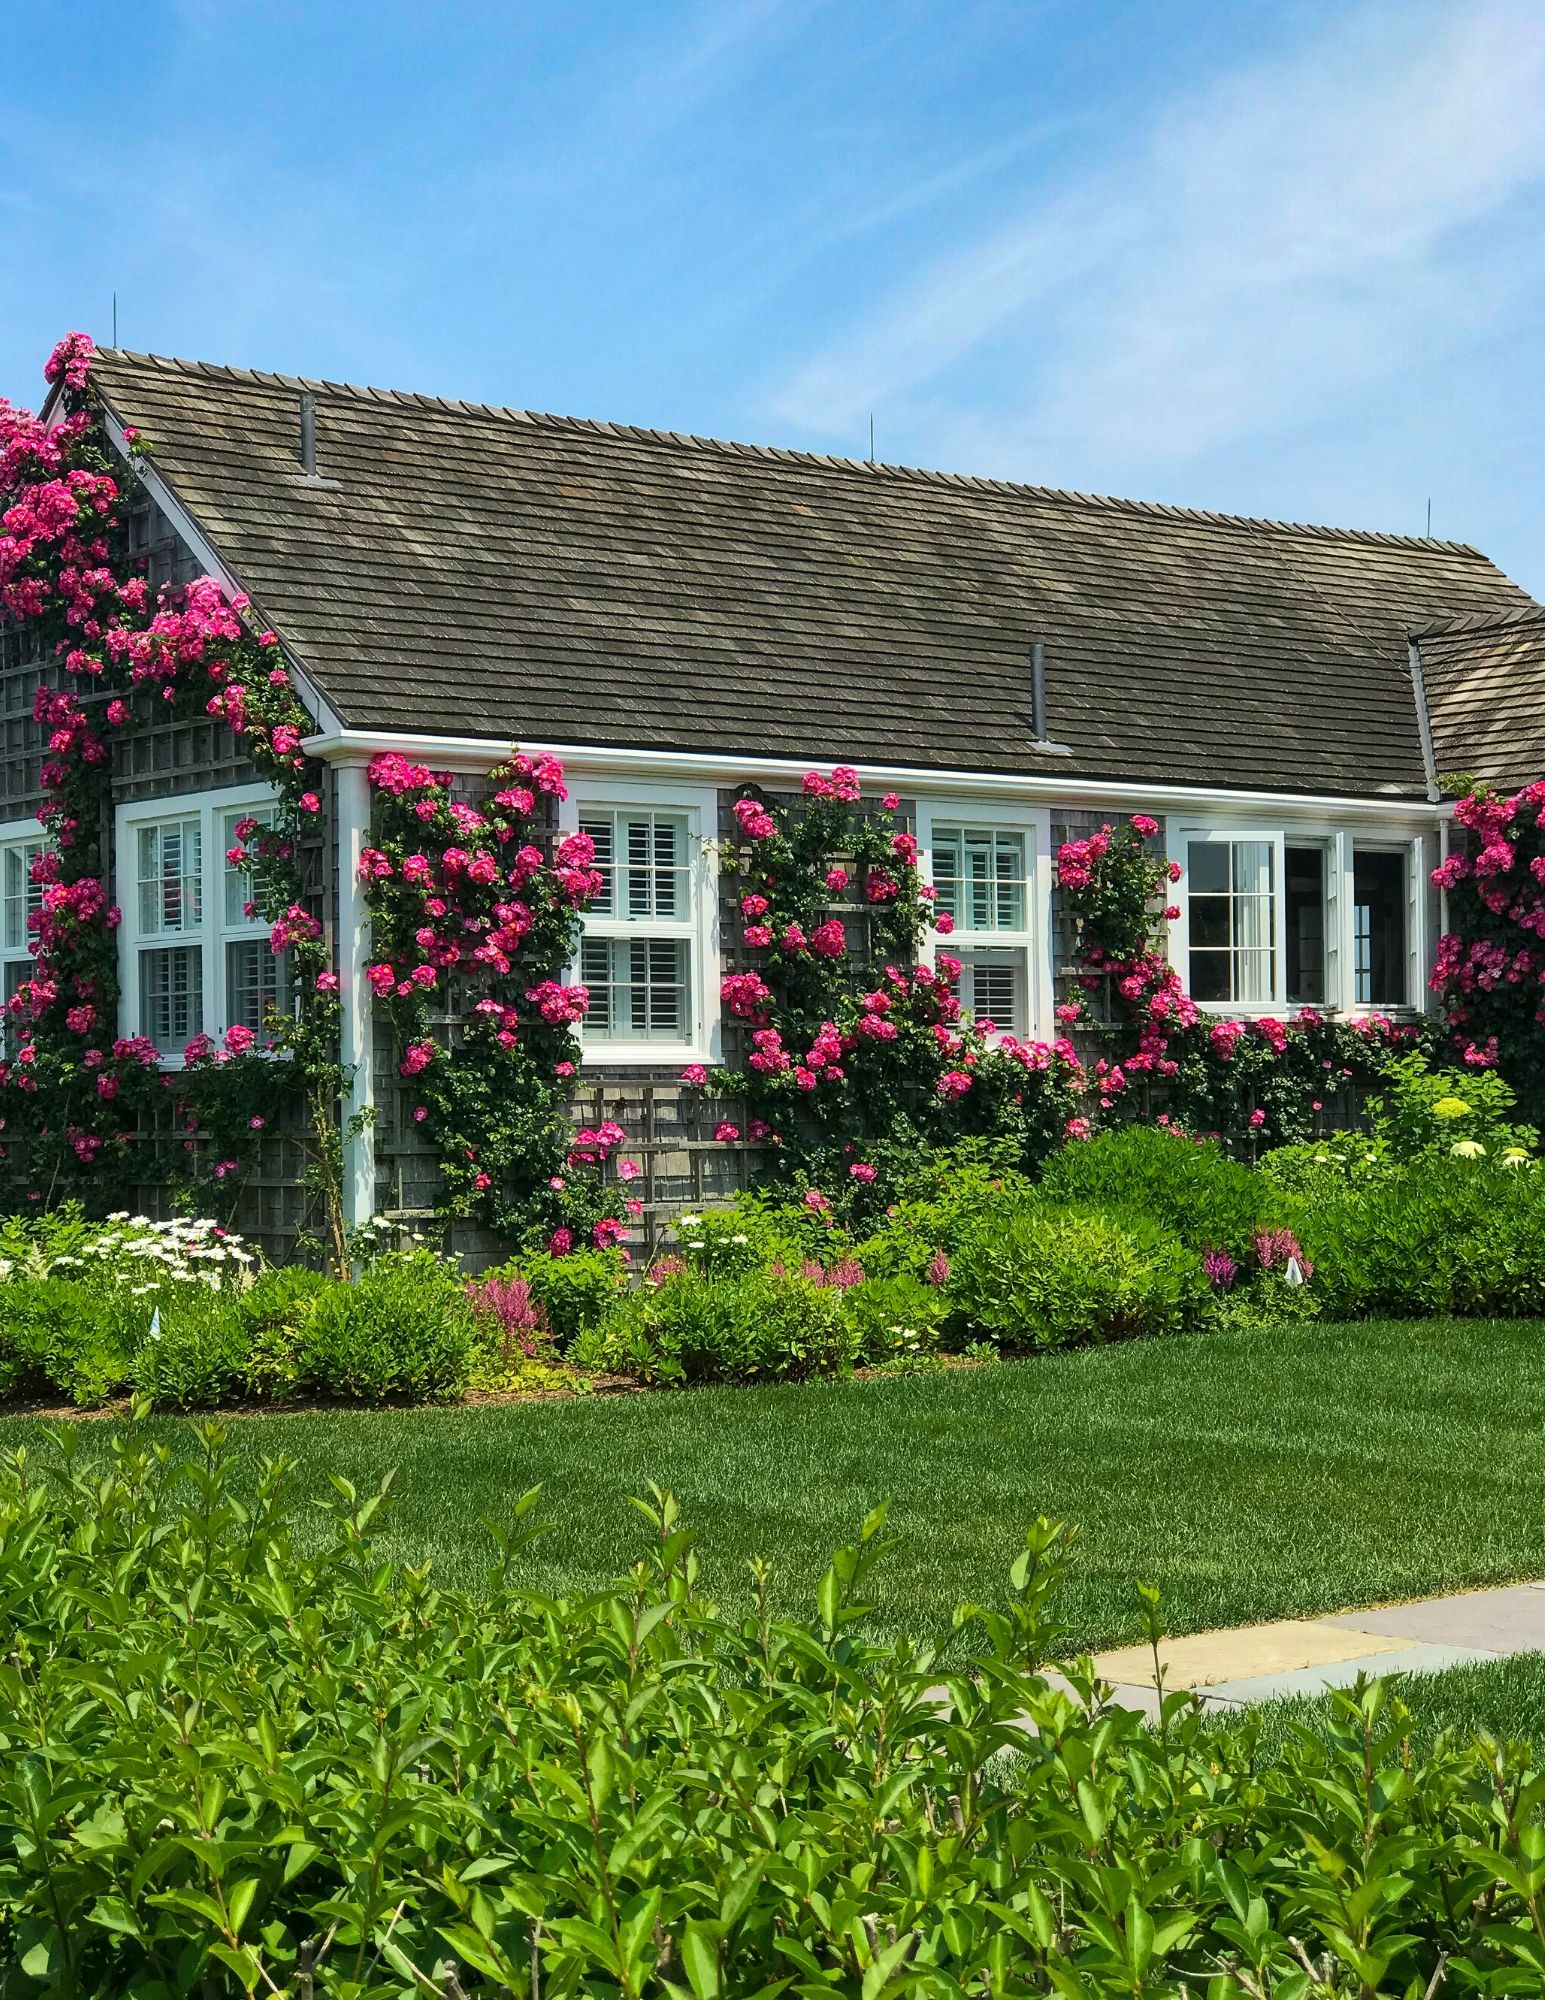 Nantucket Rose Covered Cottages in Sconset-8